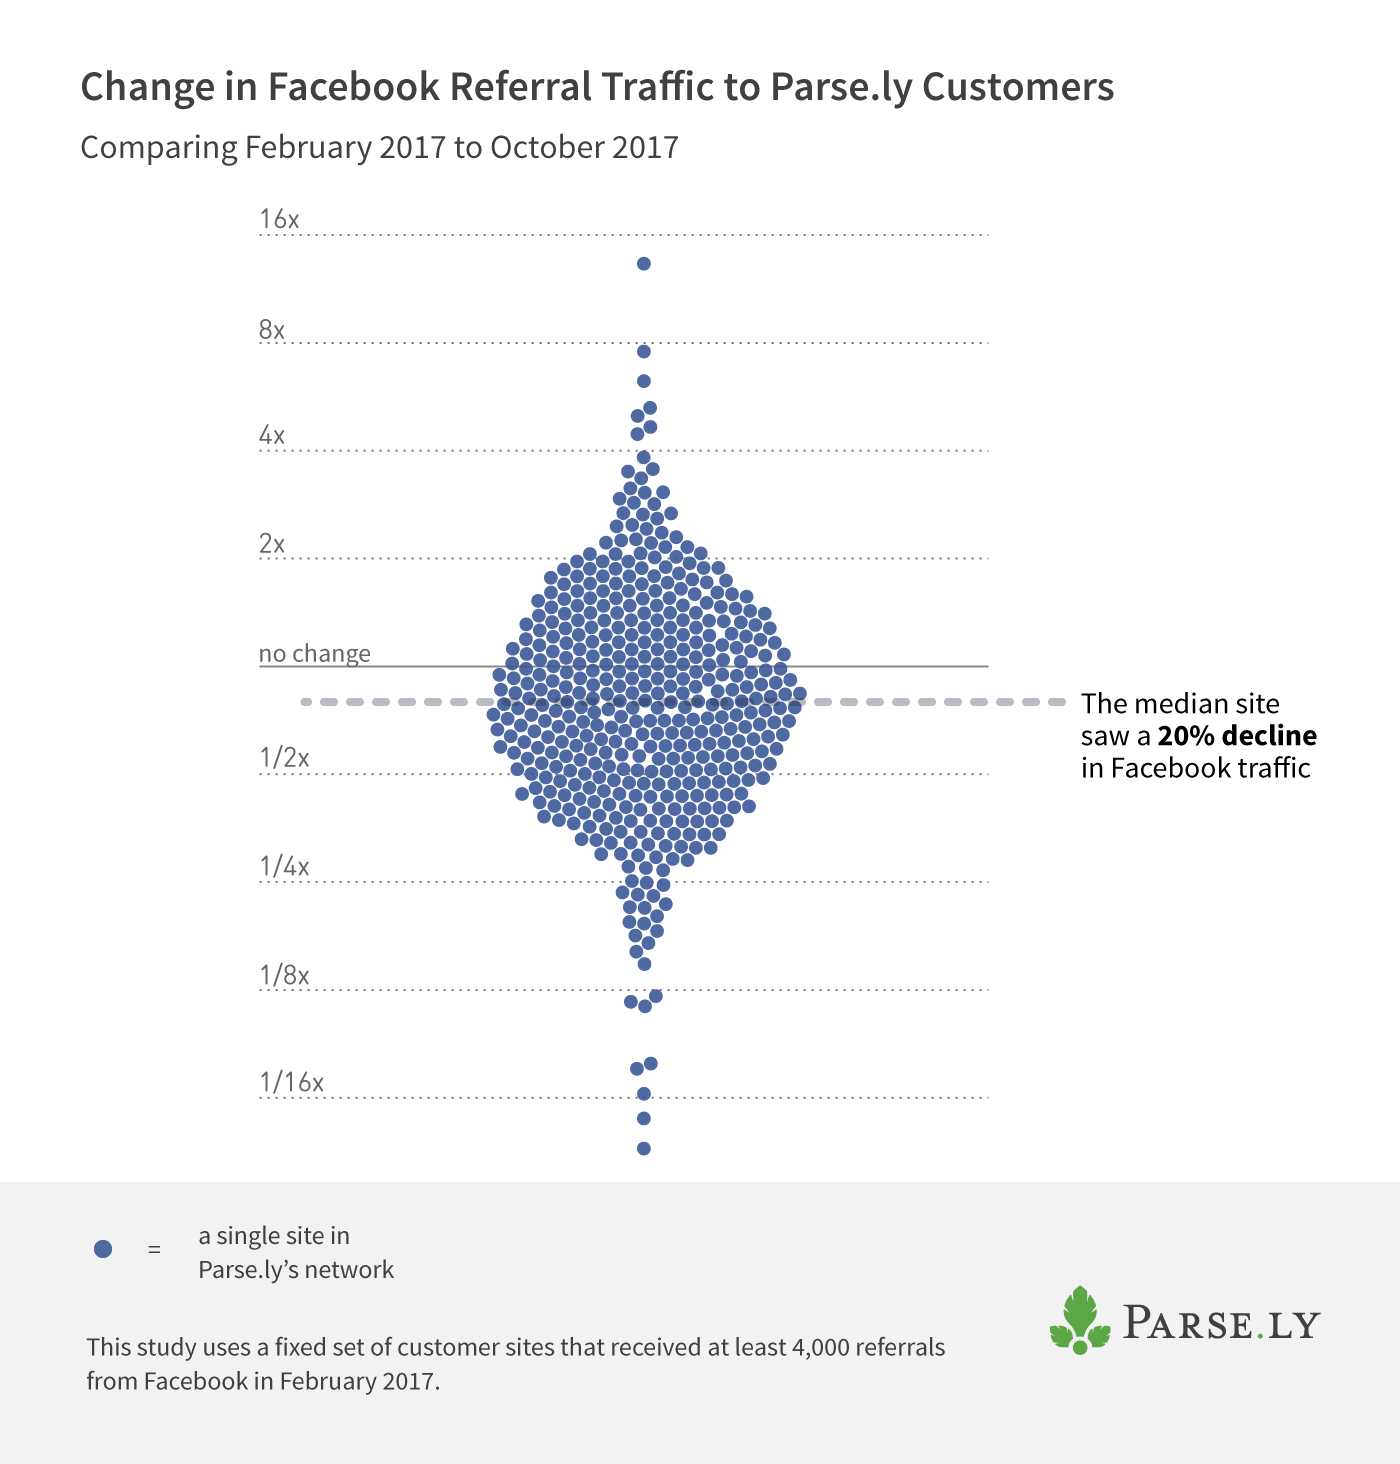 change in Facebook referral traffic to publishers